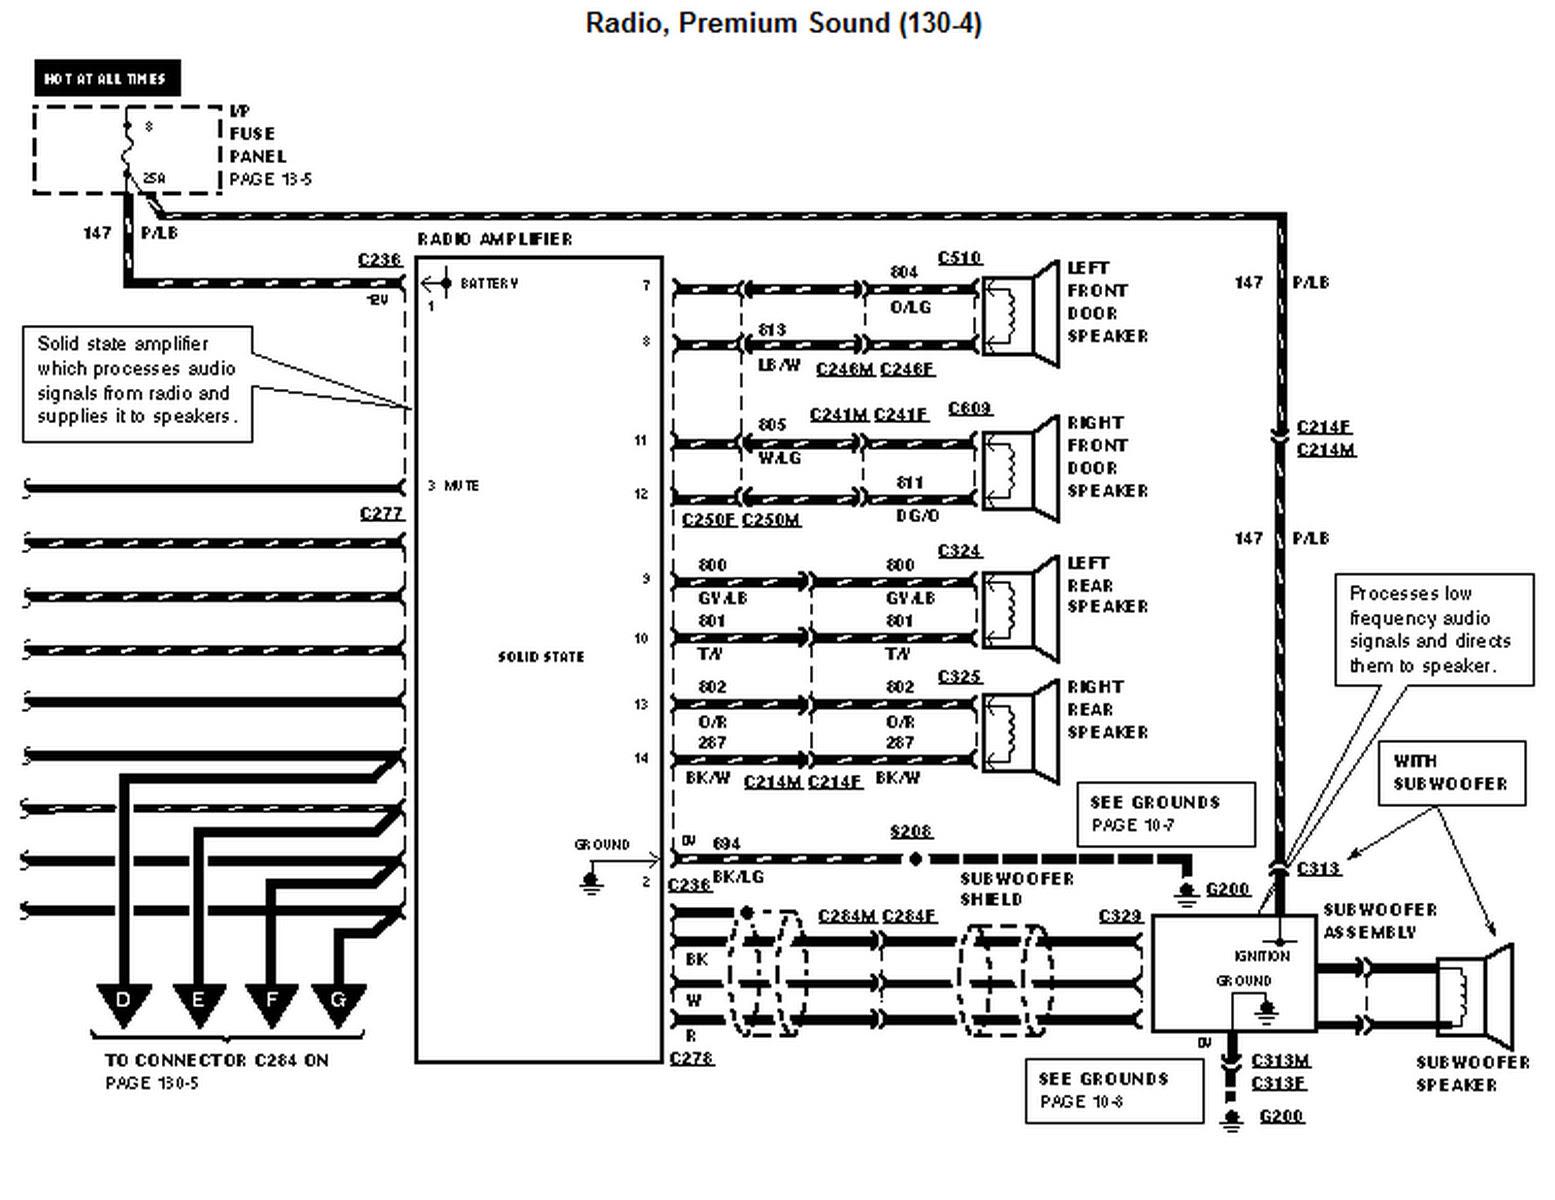 Diagram 1987 Ford Radio Wiring Diagram Full Version Hd Quality Wiring Diagram Sitexbaty Filmarco It